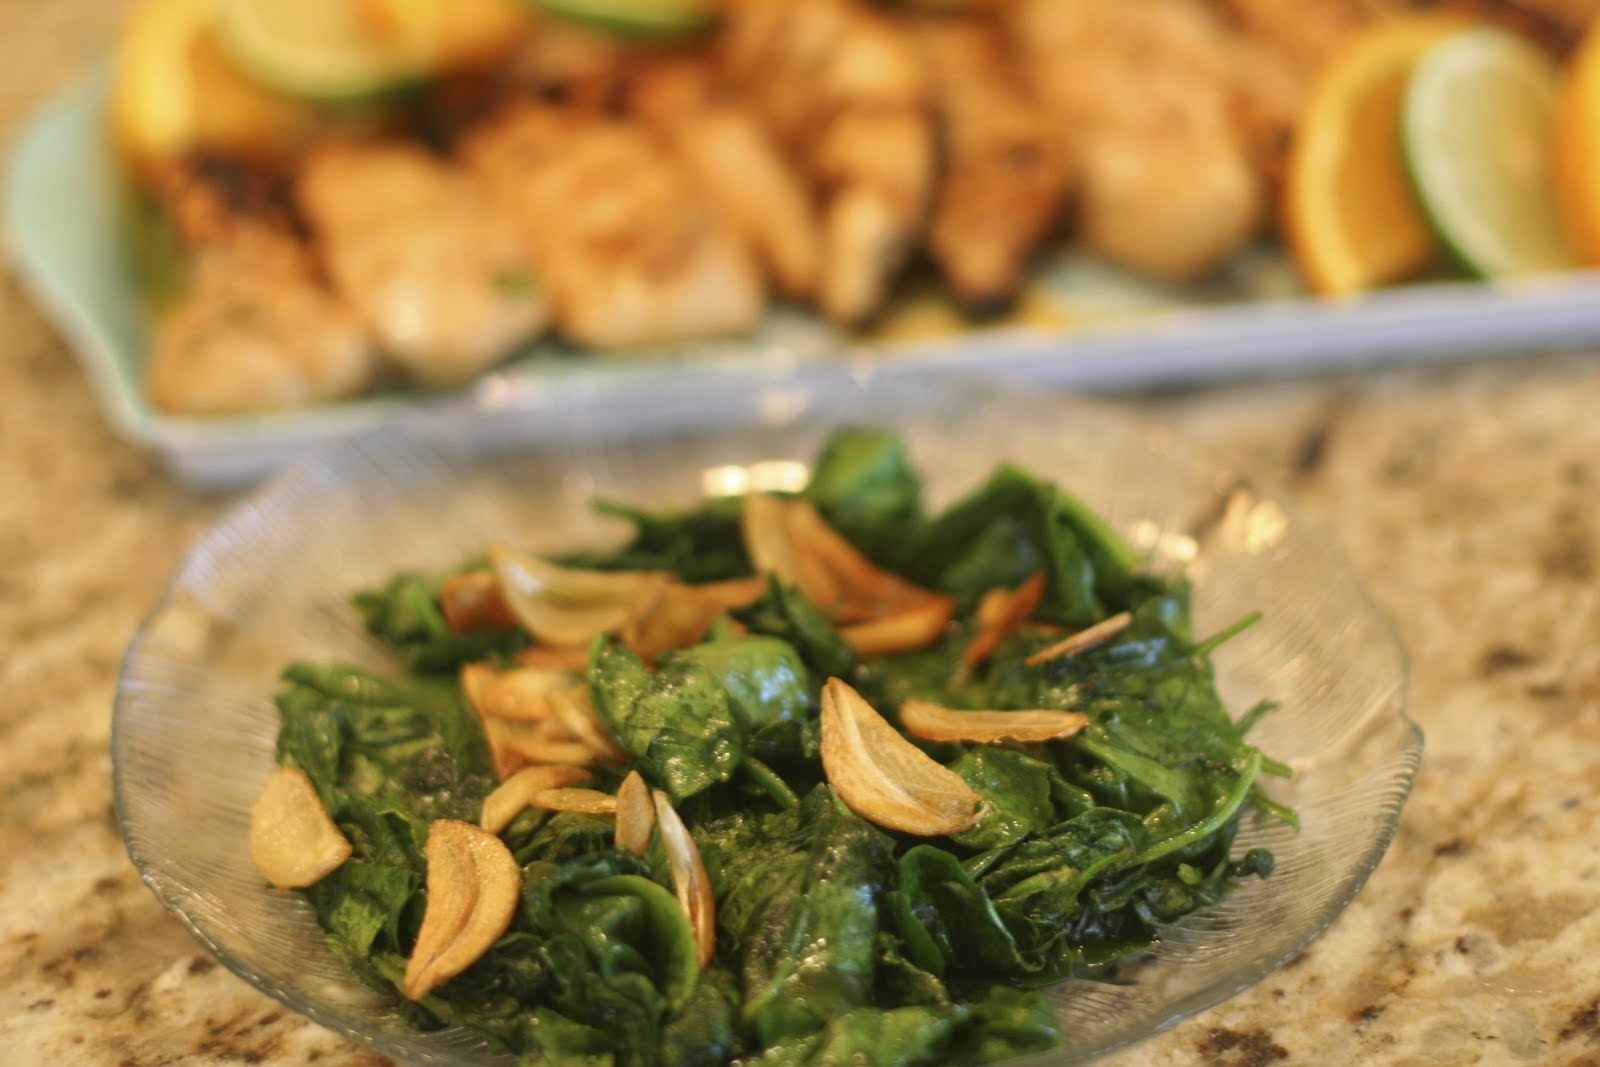 Suppers at Sunset: Spinach with Garlic Chips